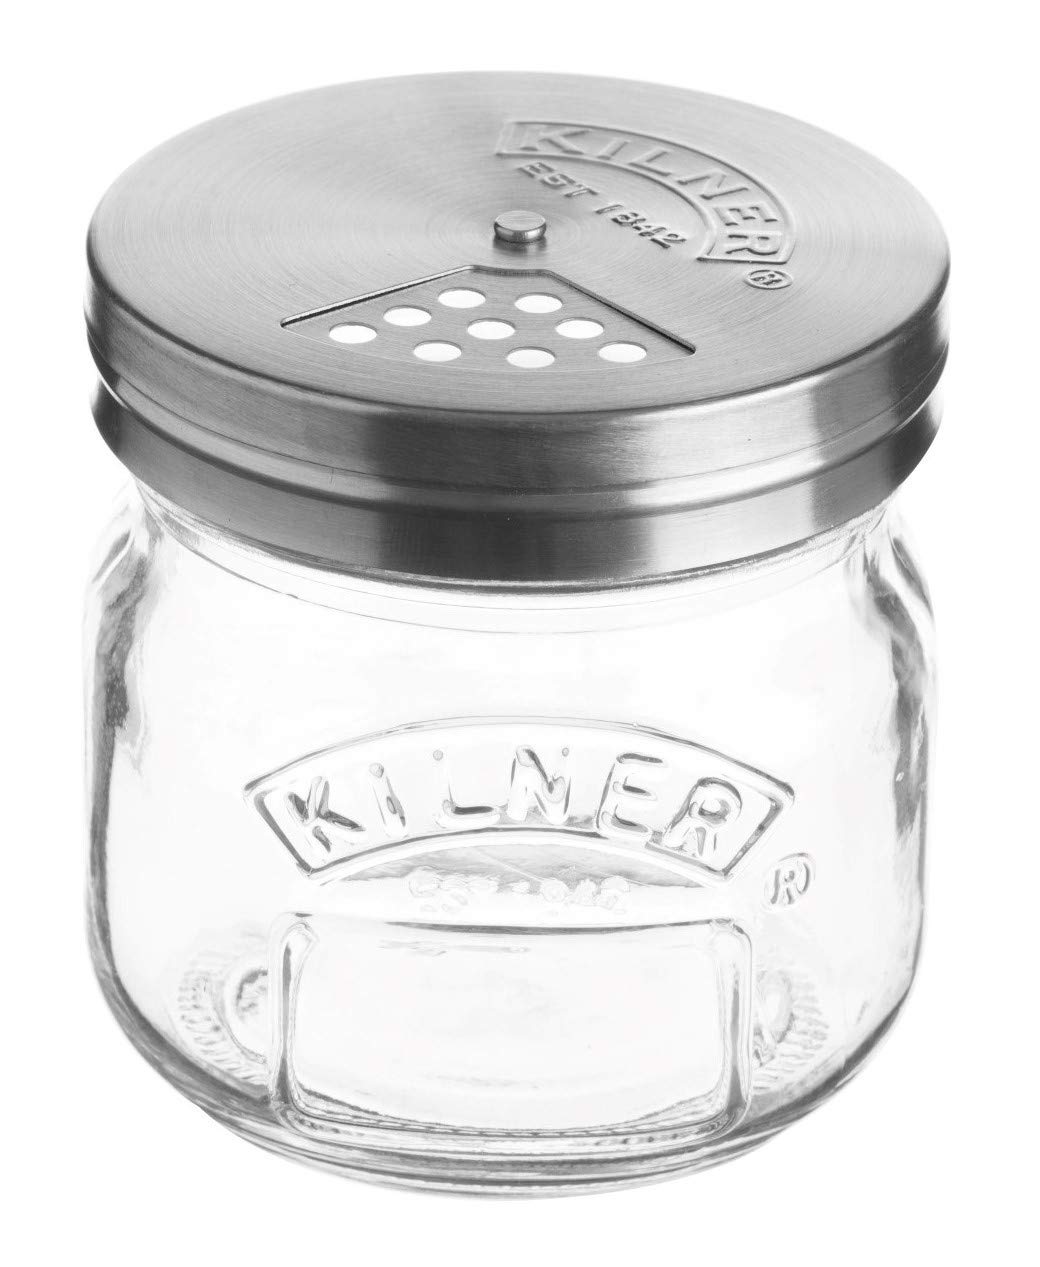 Kilner Storage Jar with Shaker Lid, Store and Serve Parmesan, Dried Herbs, and Sprinkles, 8-1/2-Fluid Ounces